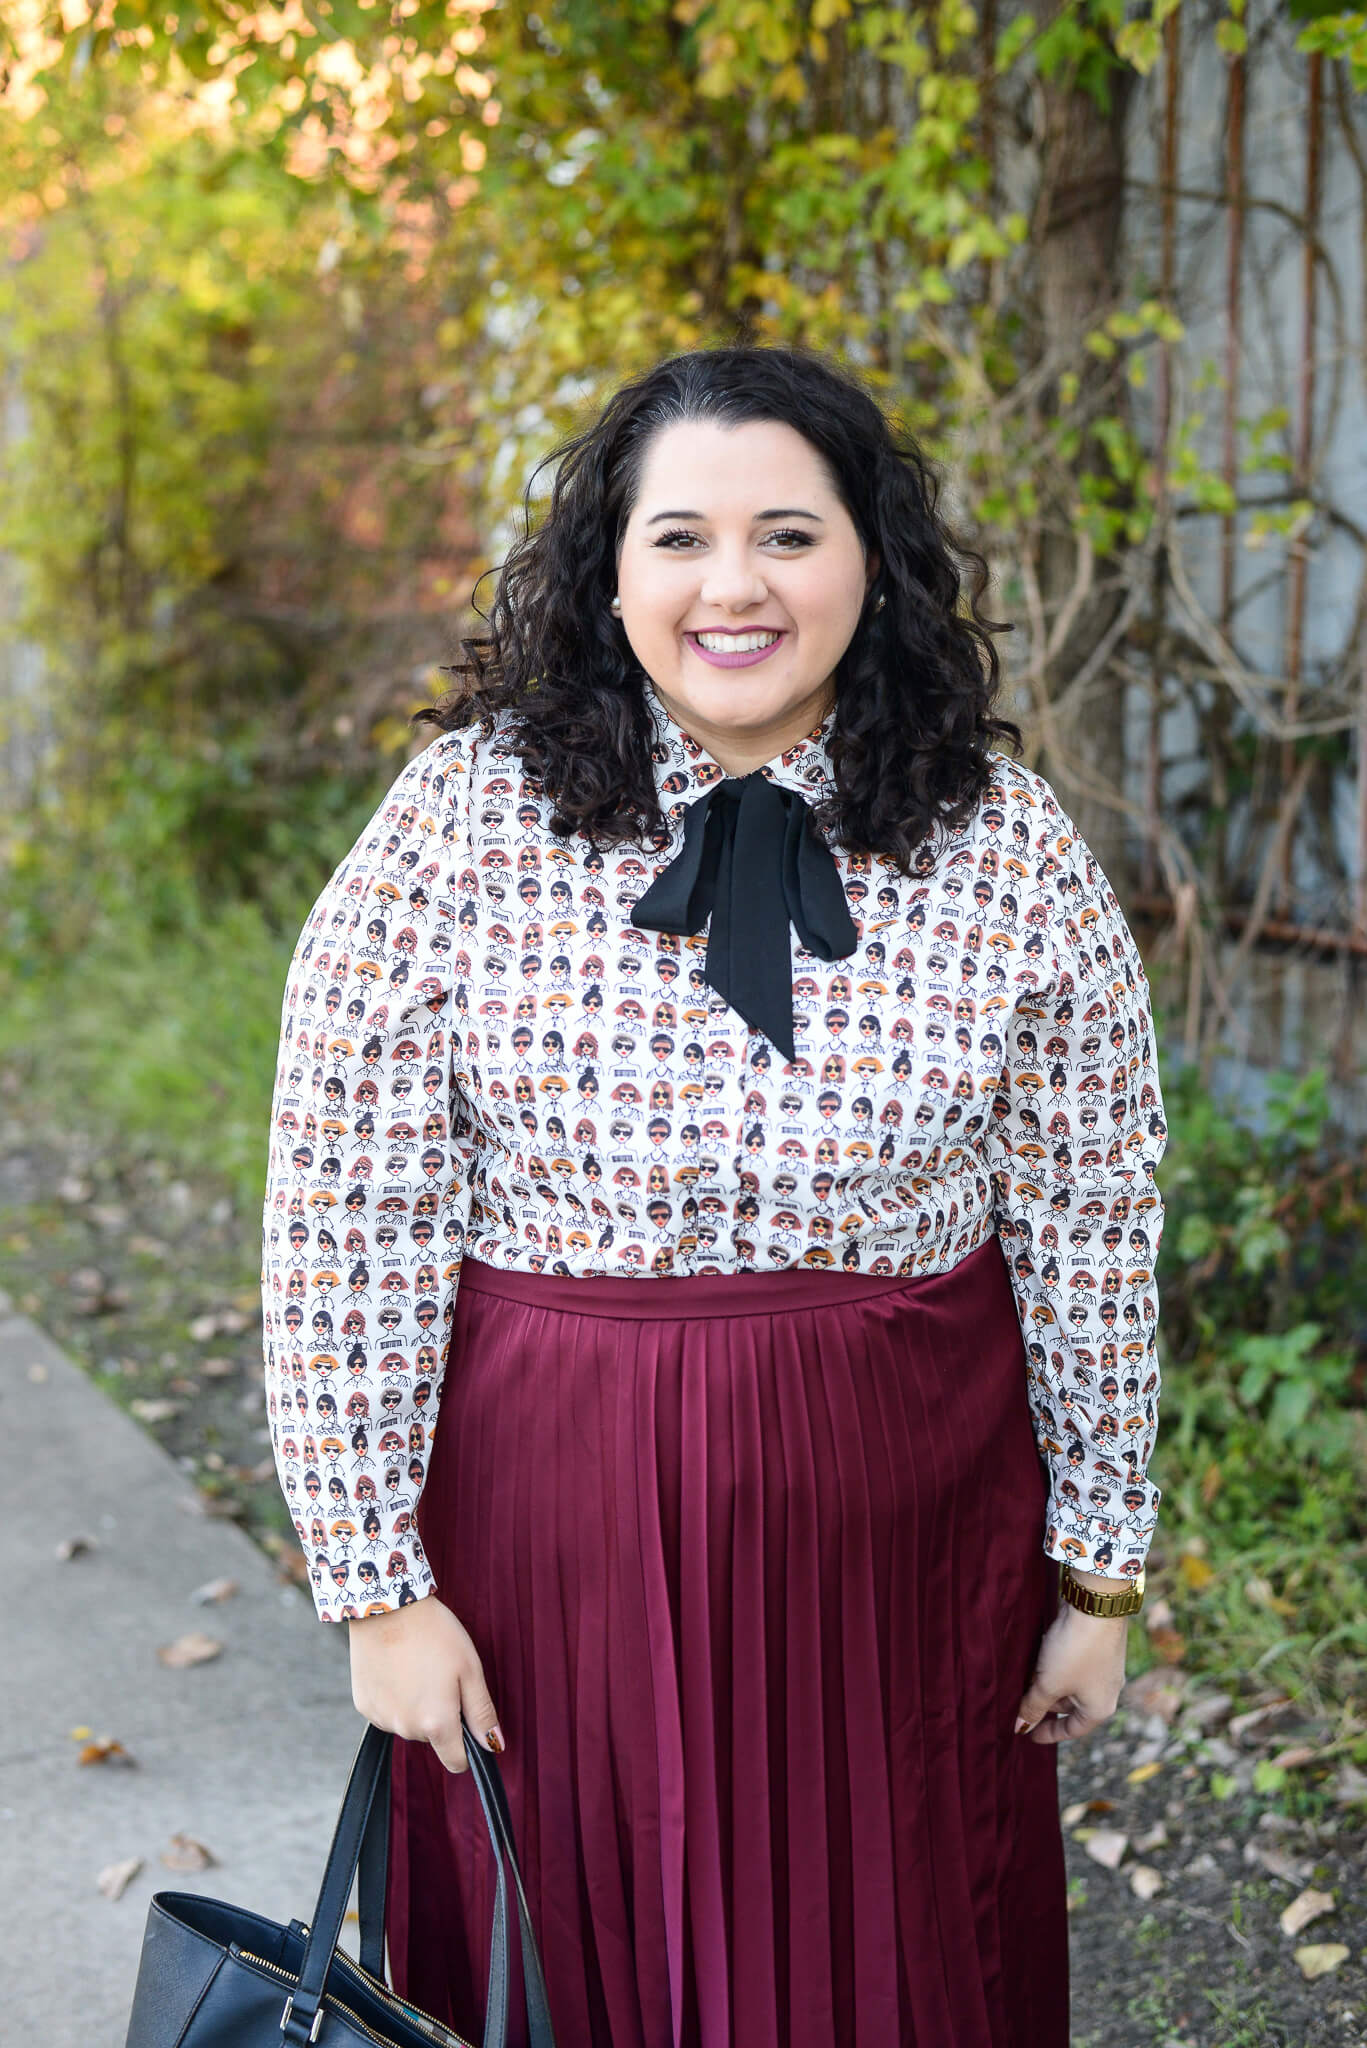 All smiles because I styled this amazing Eloquii top multiple ways